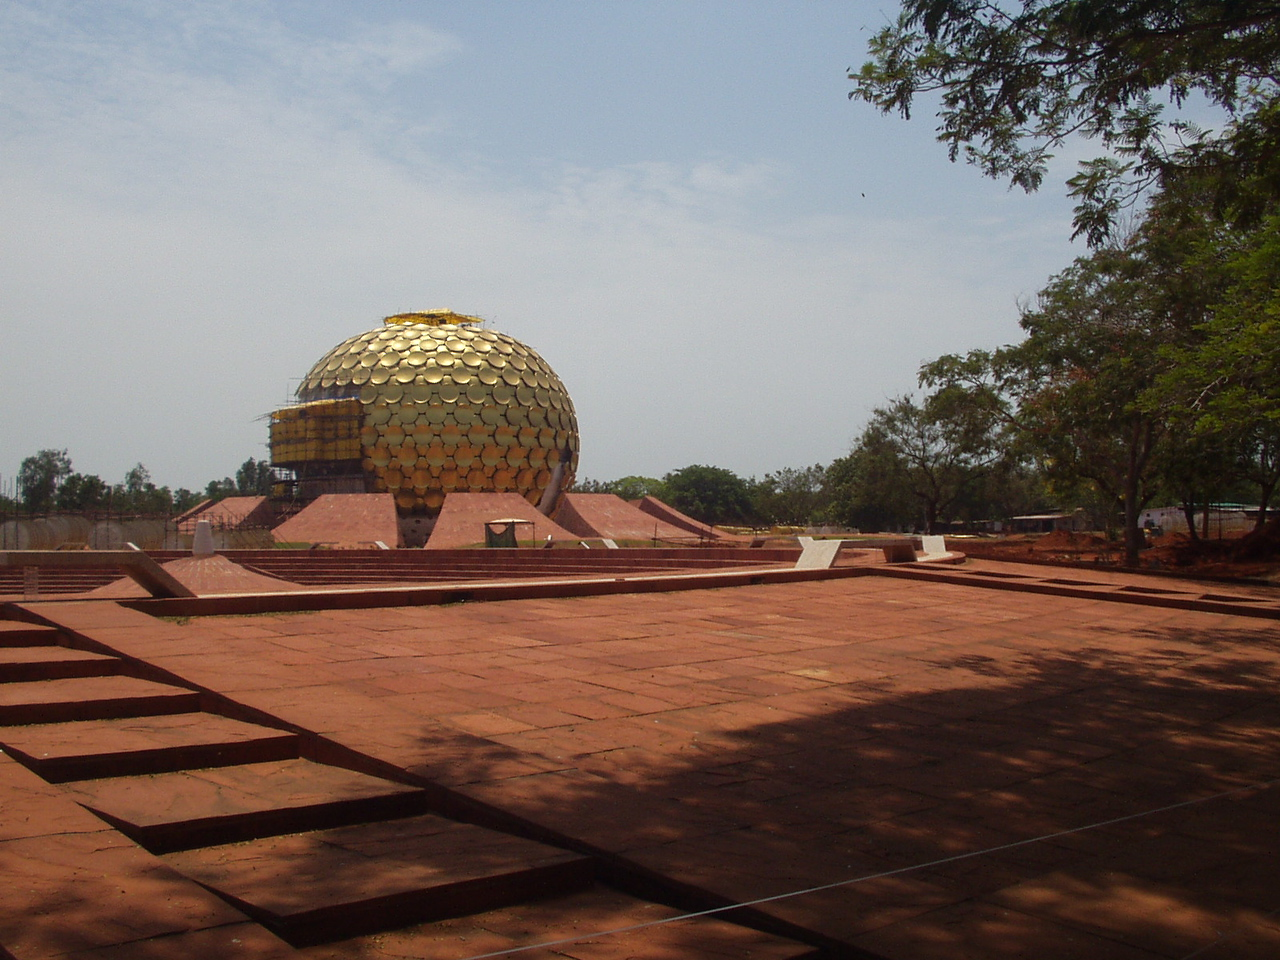 22 May: Auroville